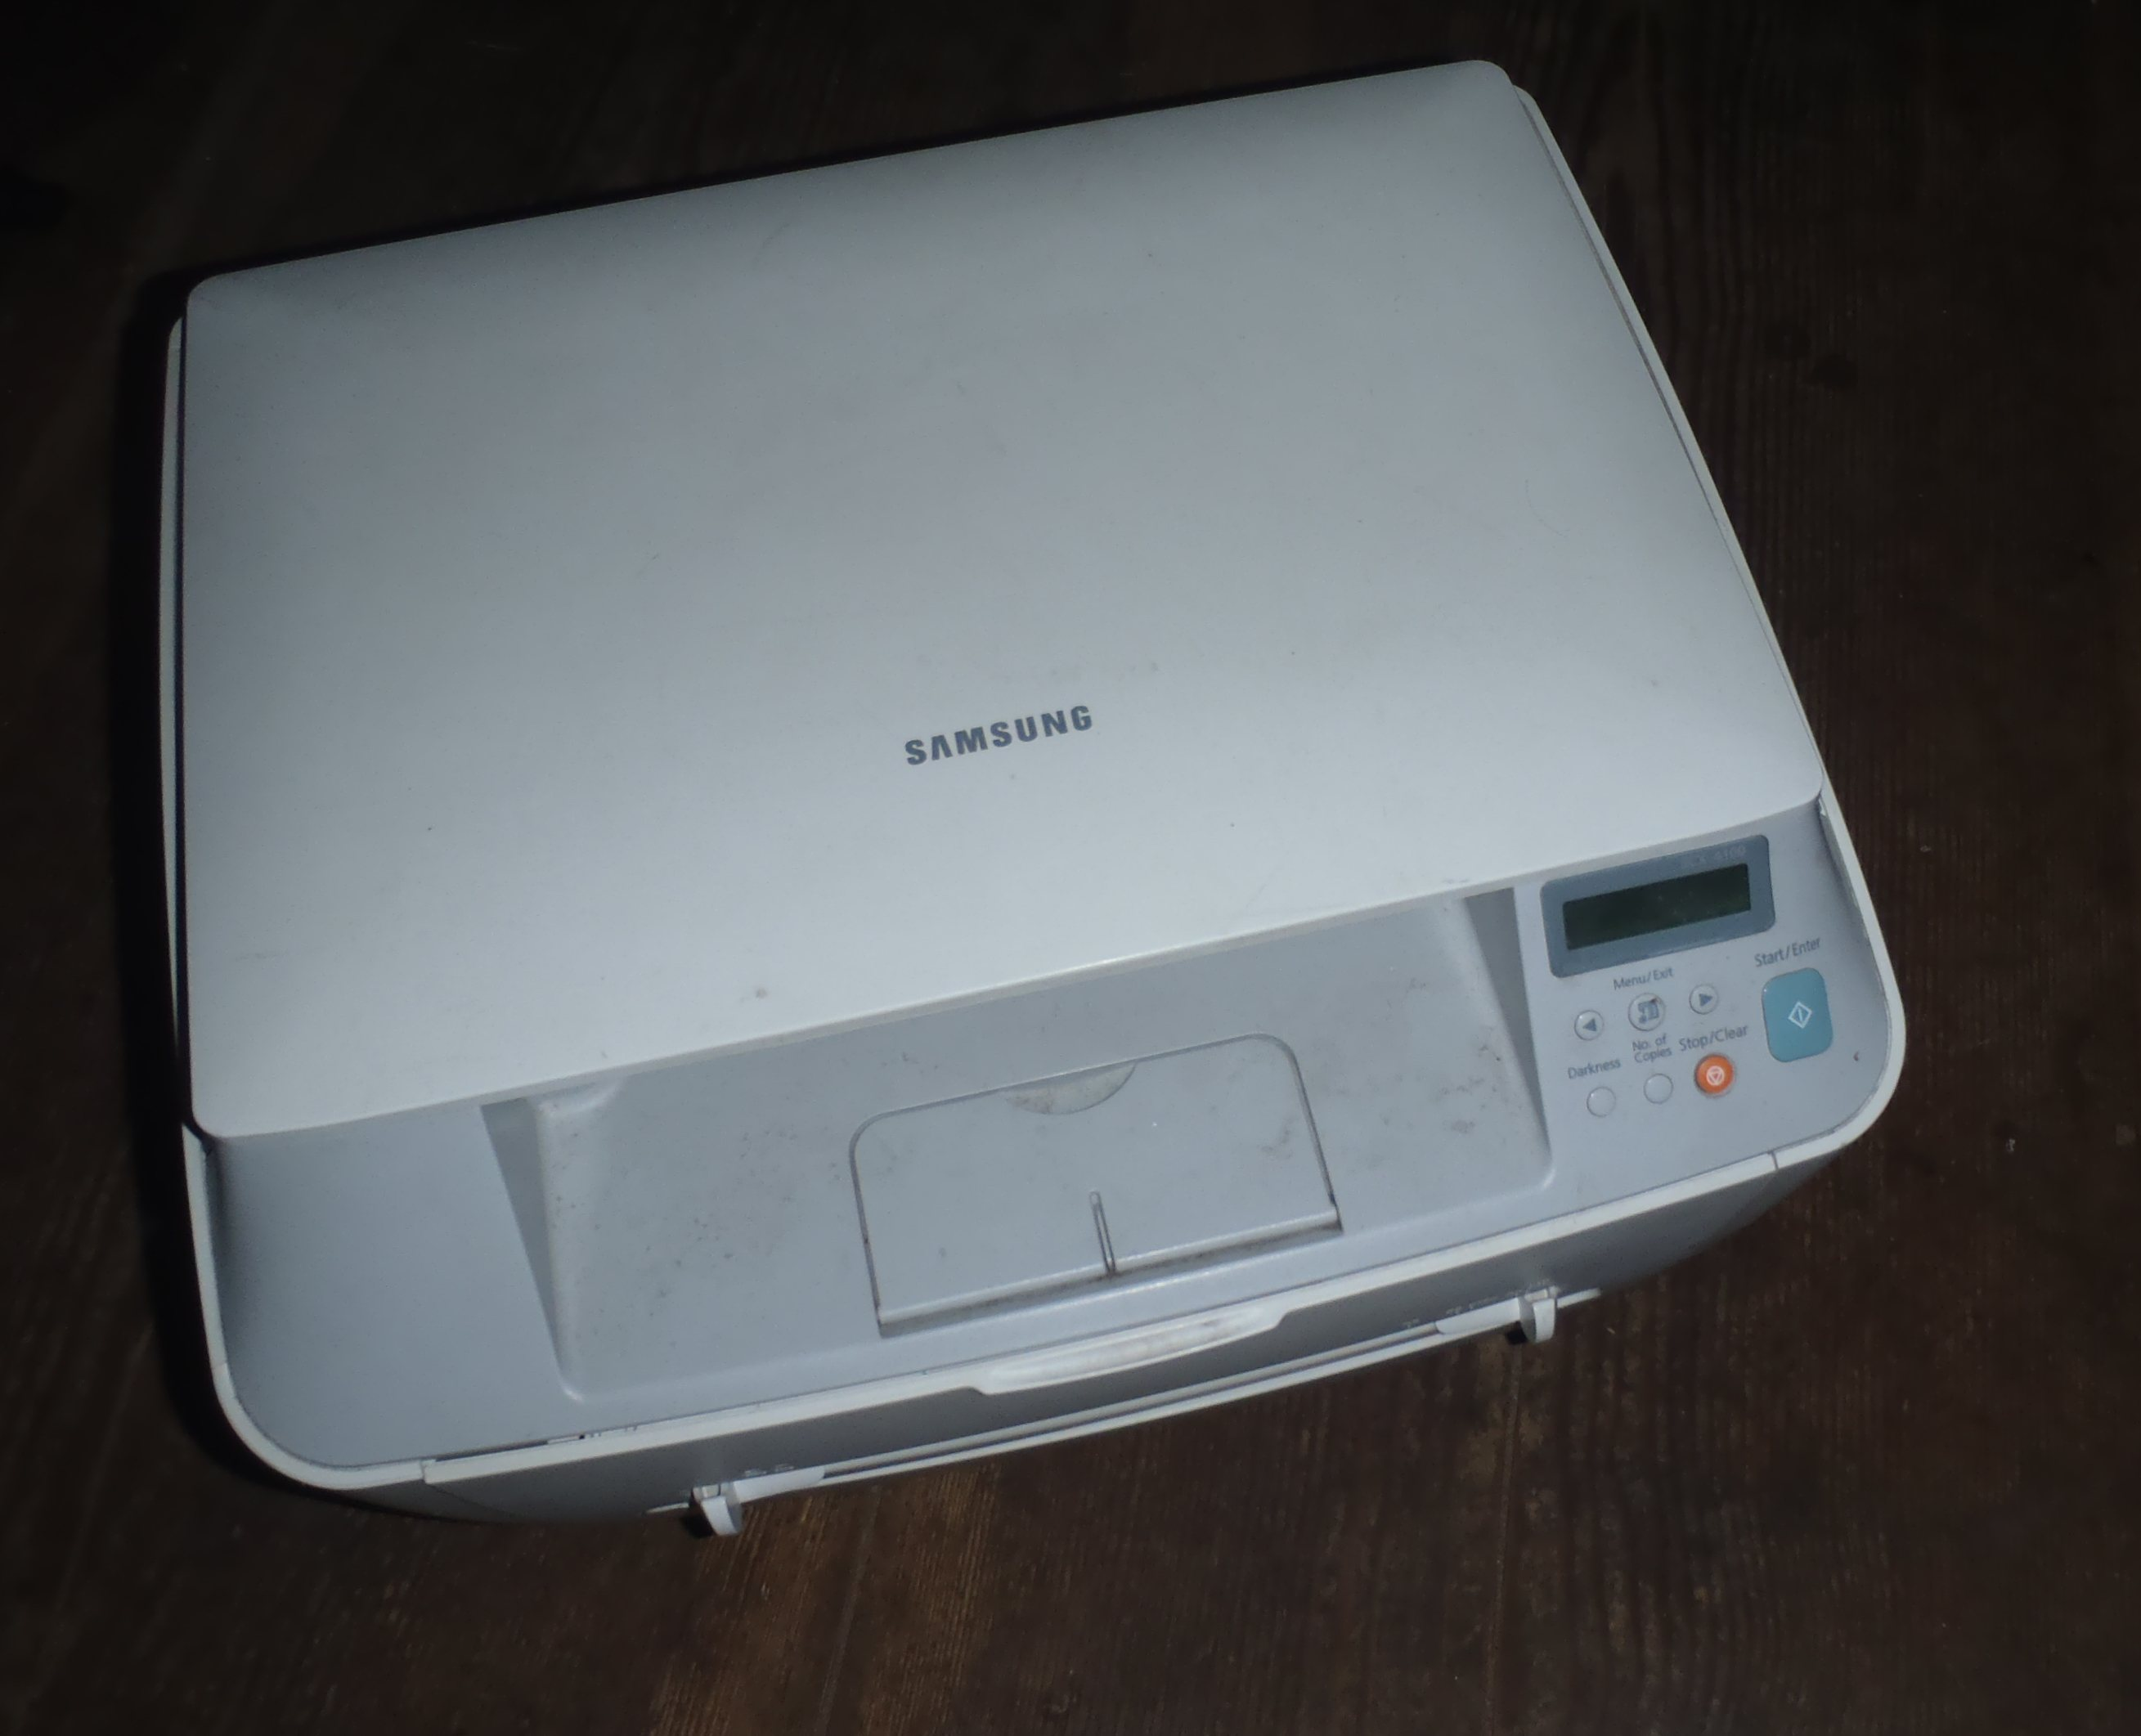 Samsung SCX-4100 Printer Drivers